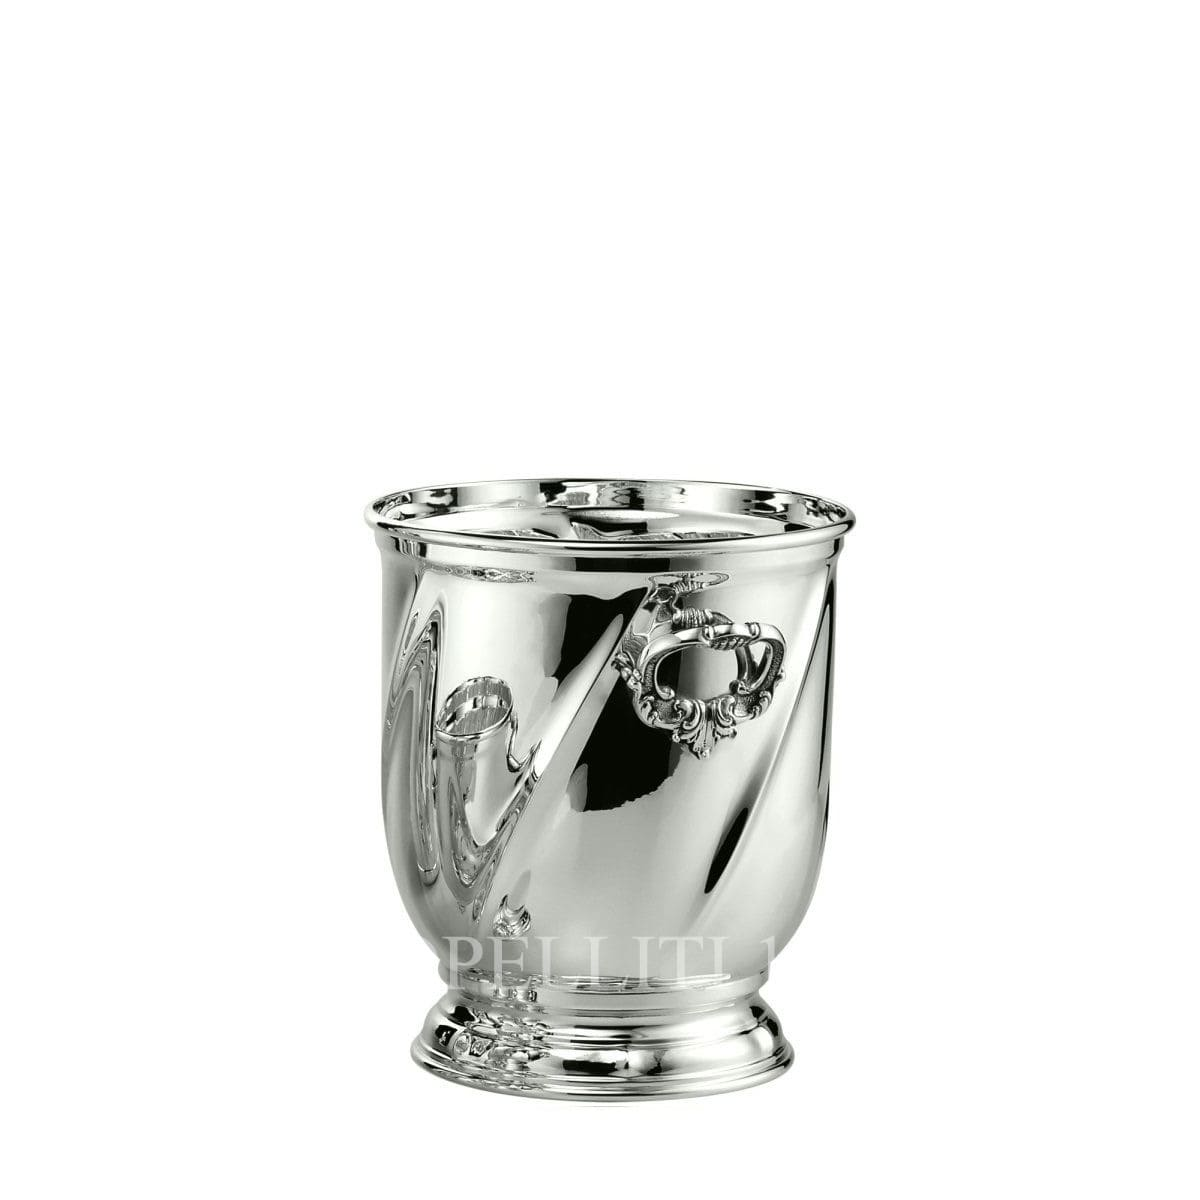 Schiavon Torsè Ice bucket with base